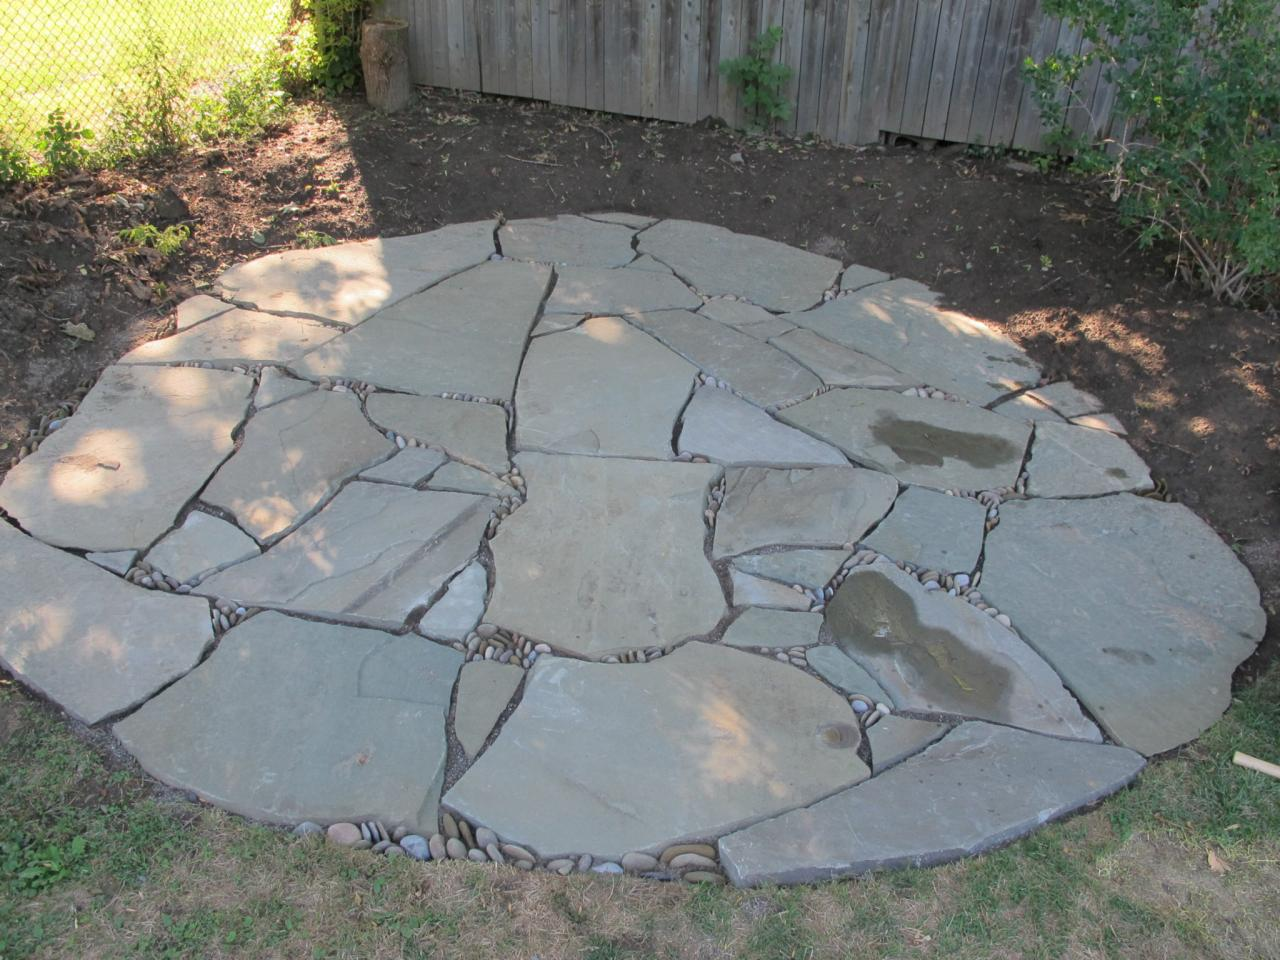 Great flagstone patio related to: flagstone outdoor spaces patios stone installing izyldmc